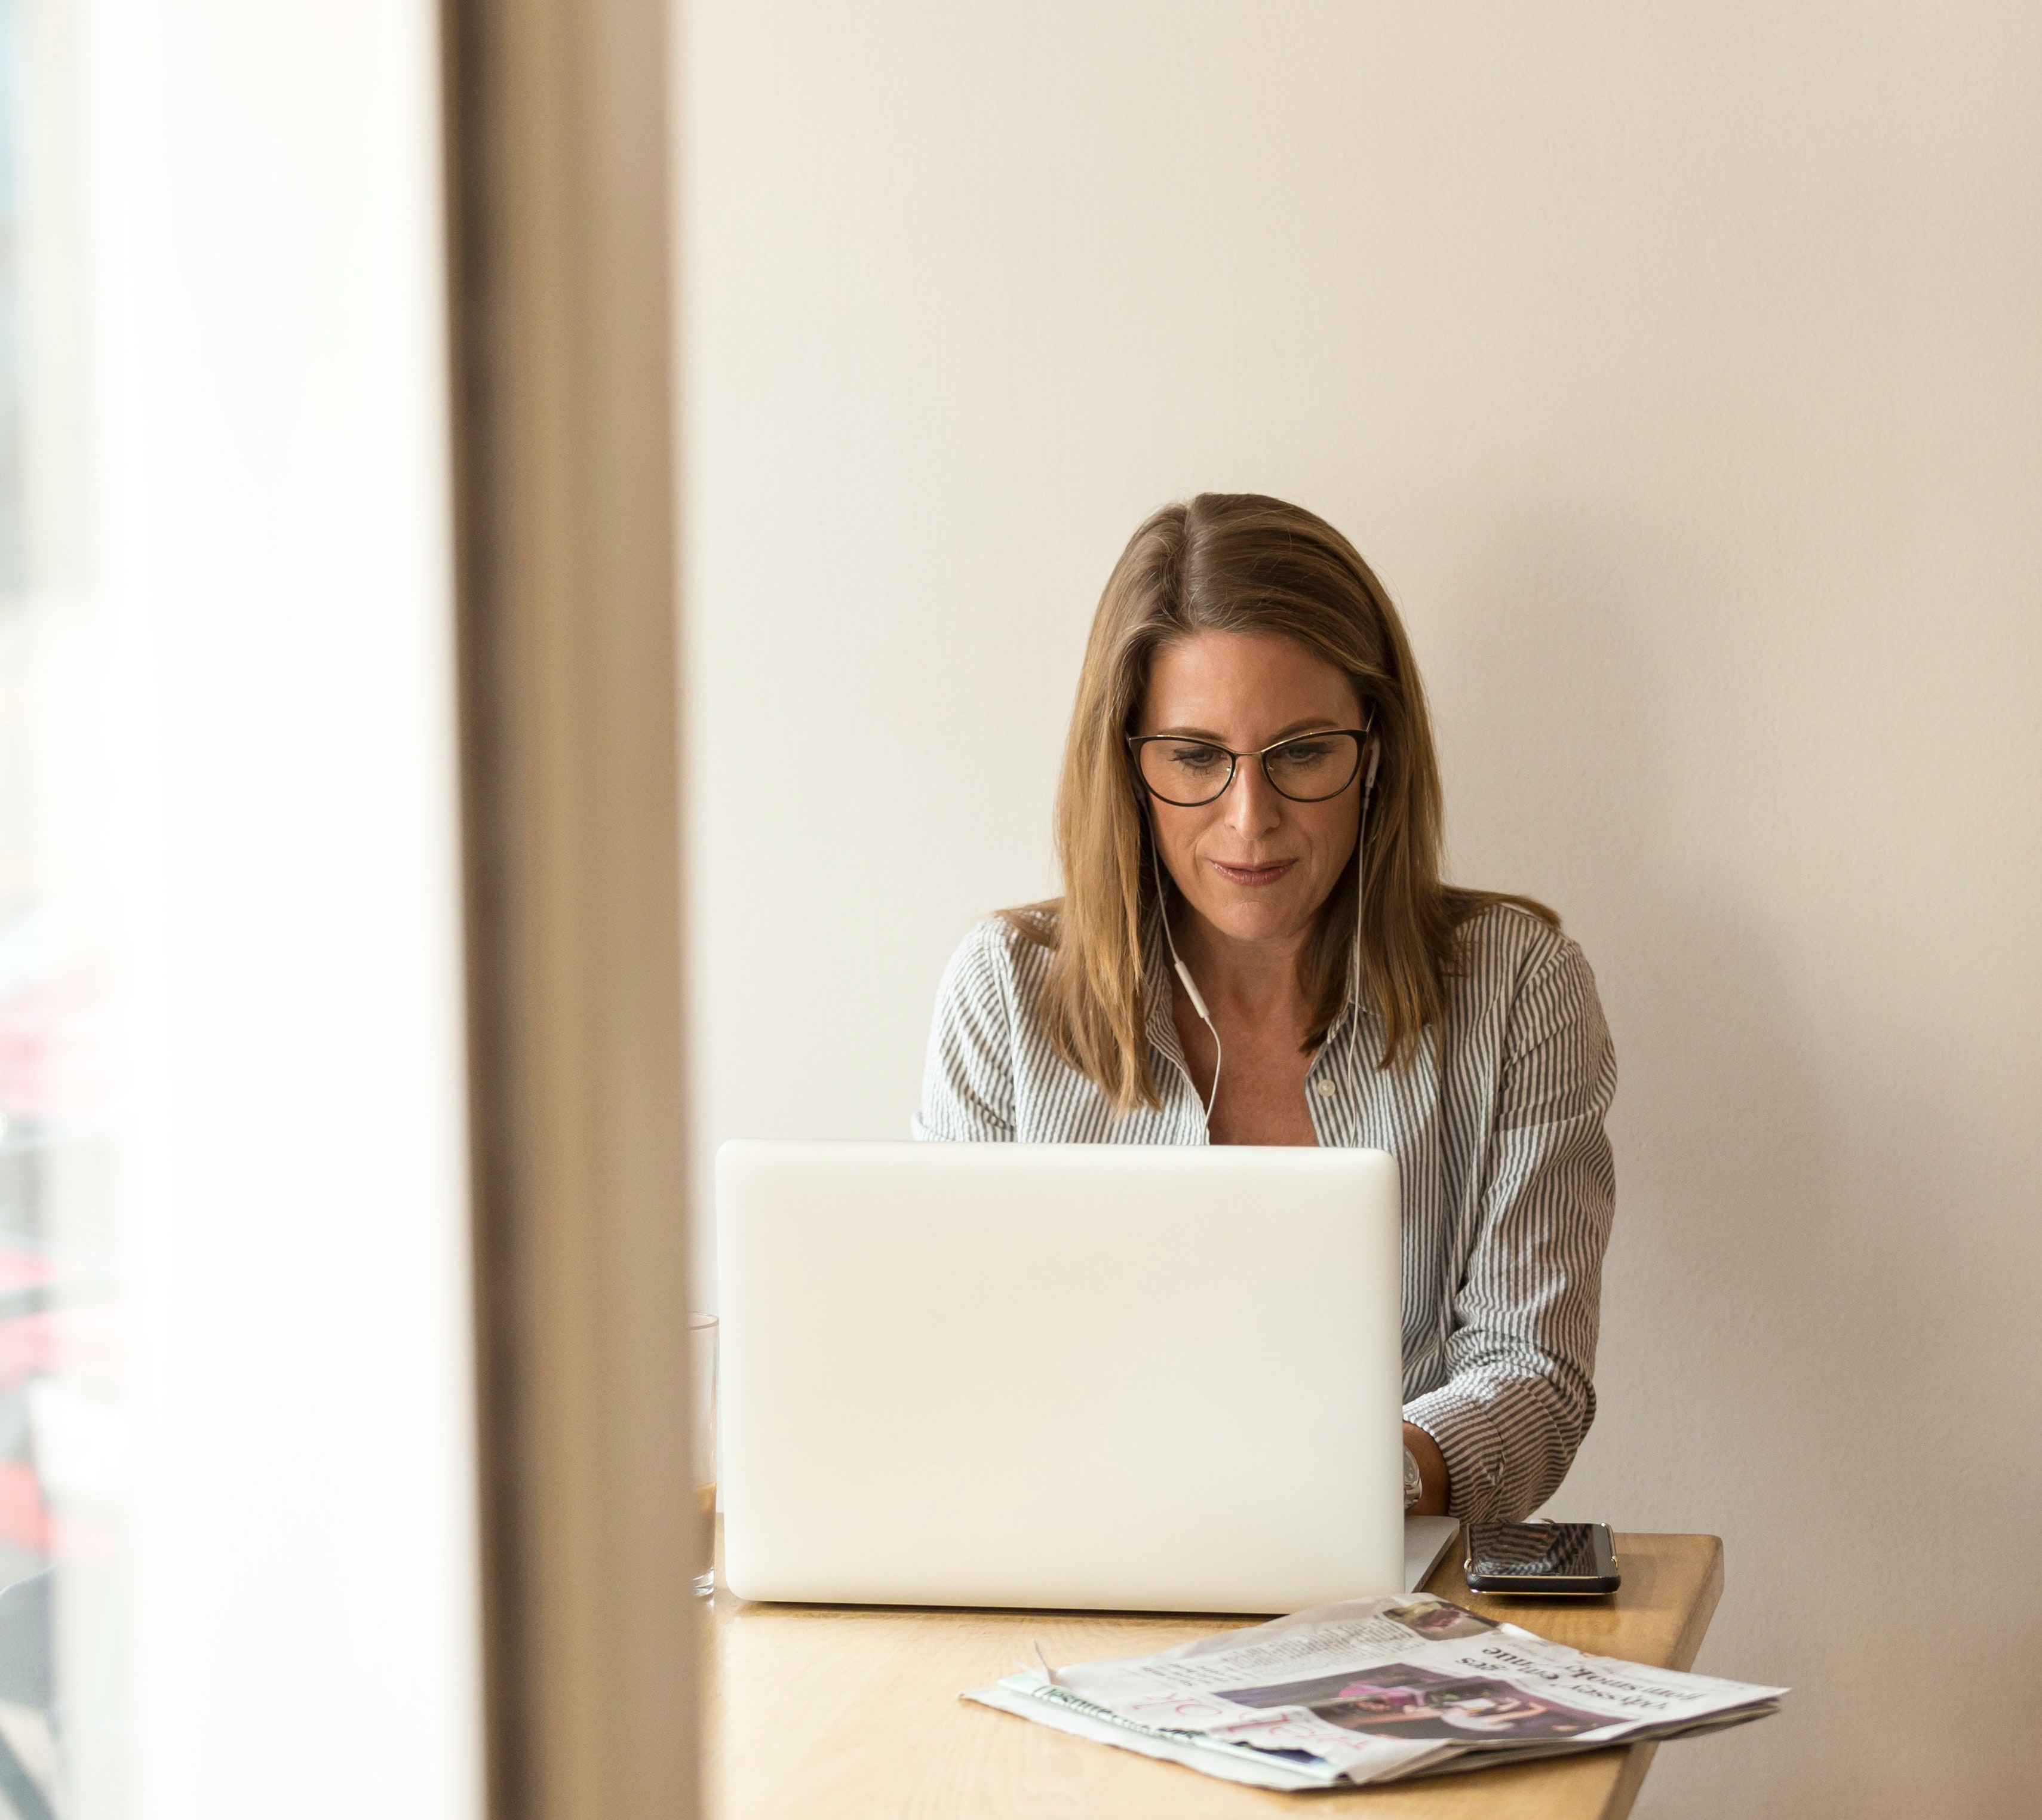 Woman sitting in front of laptop creme